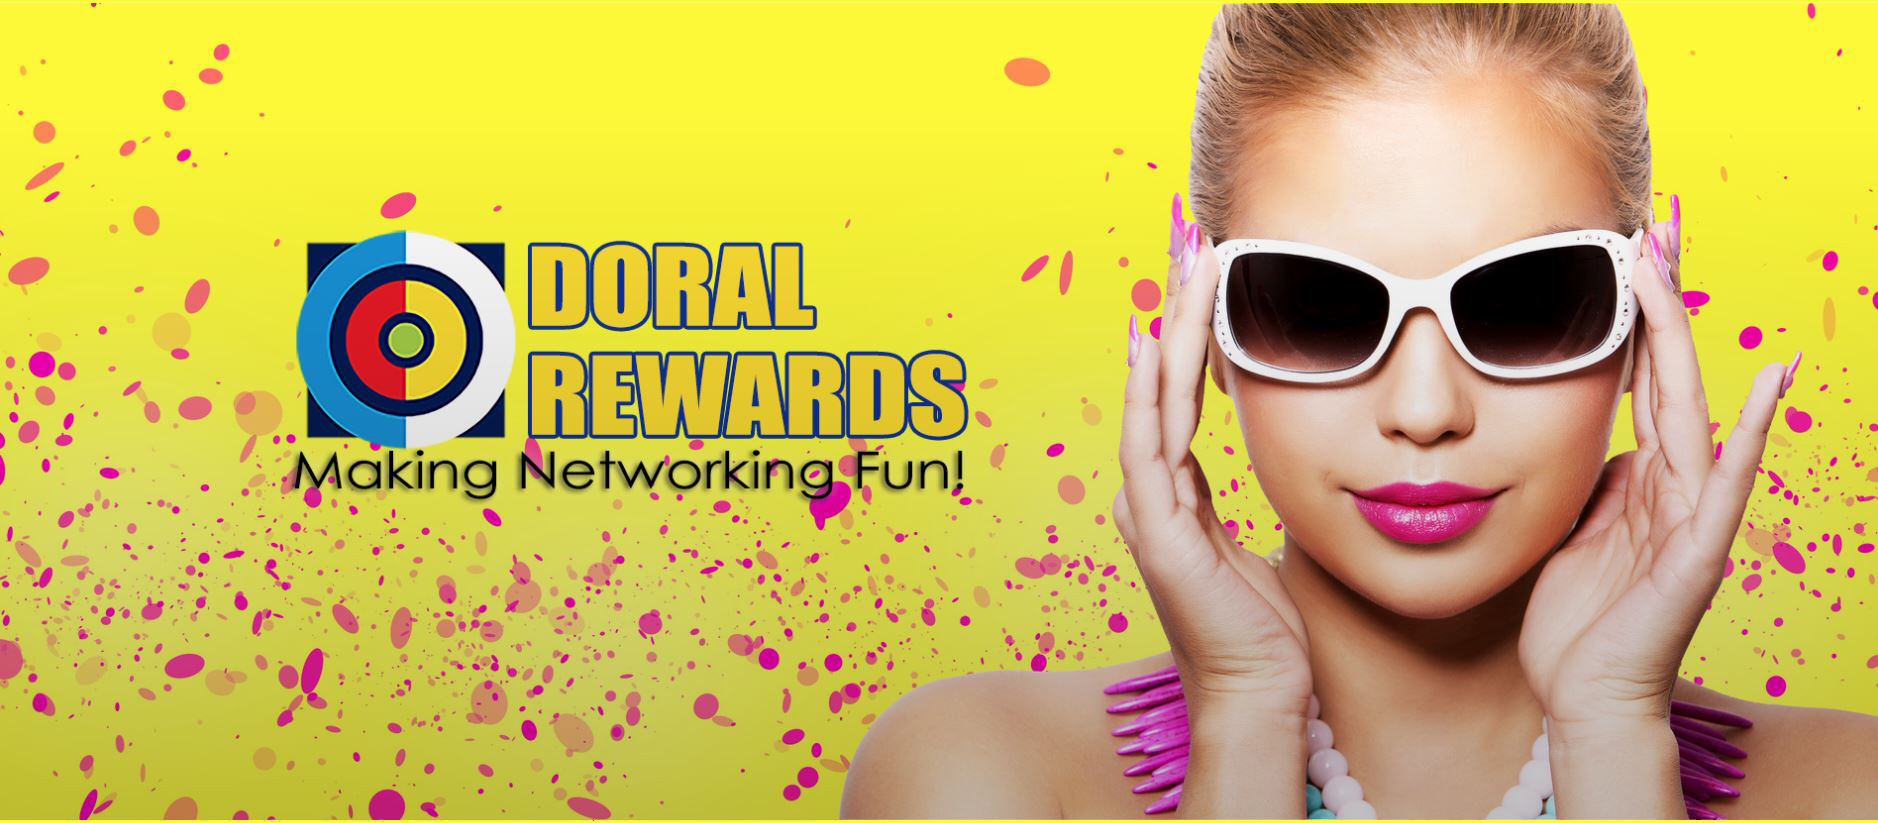 Doral Rewards: Earn Movie Tickets. Restaurant Gift Certificates, Apple Products and more...